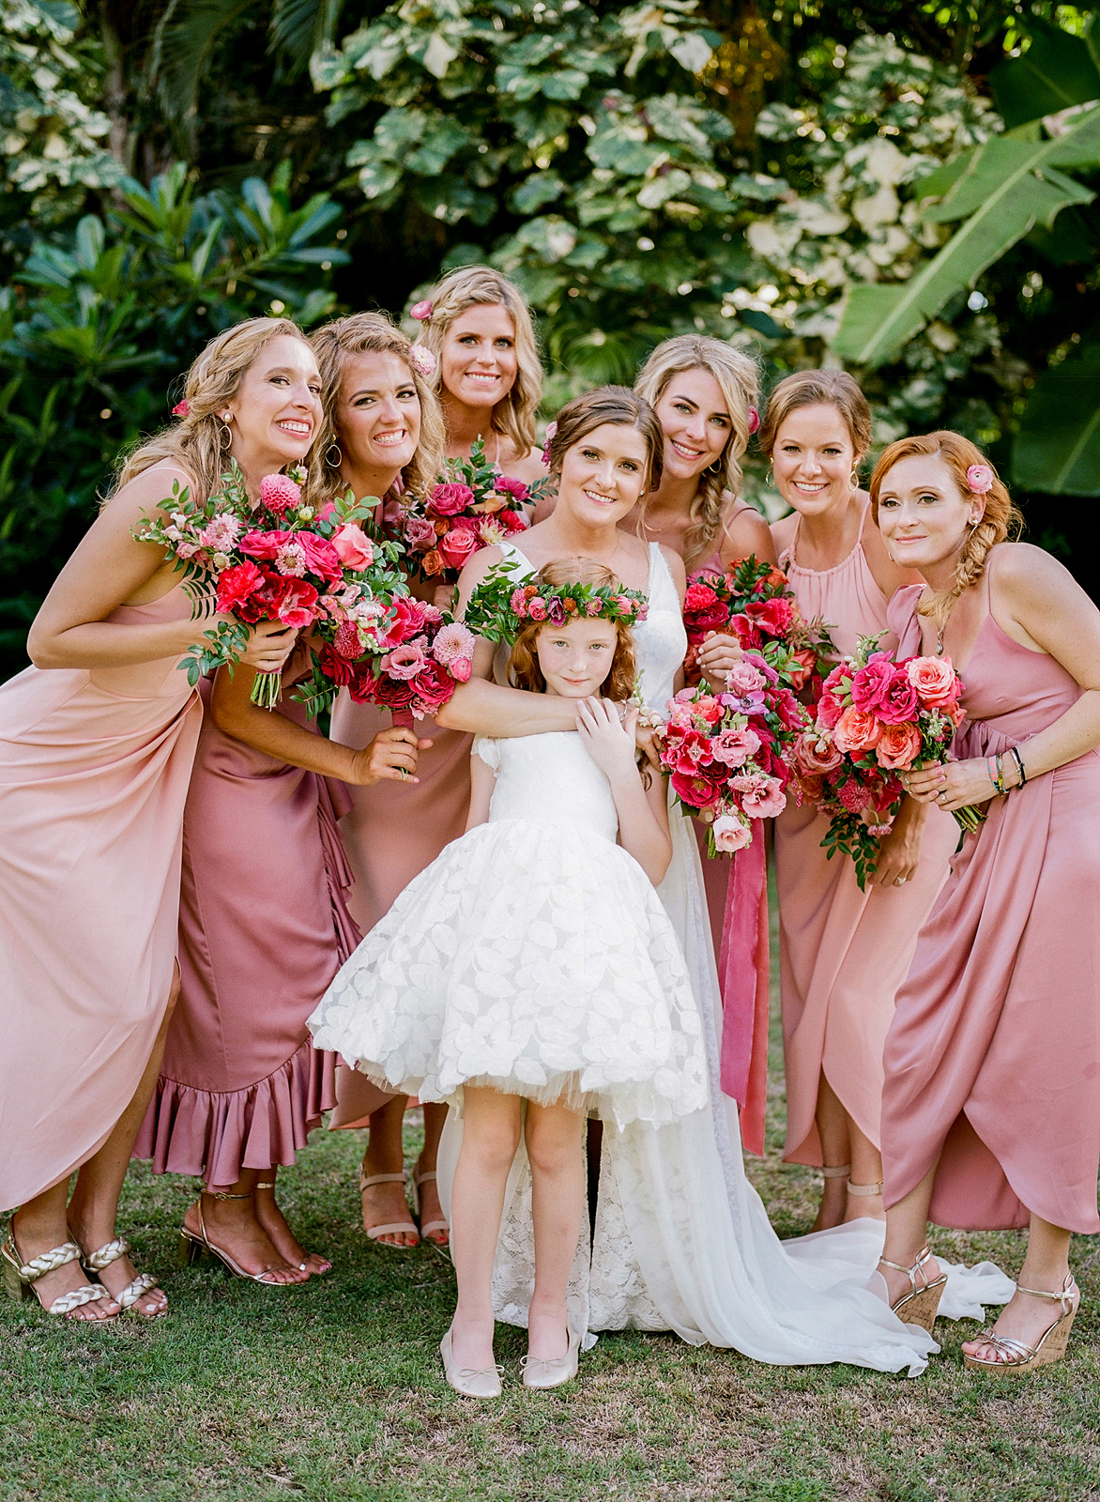 bride with bridesmaids wearing various styles of different dusty rose colored dresses